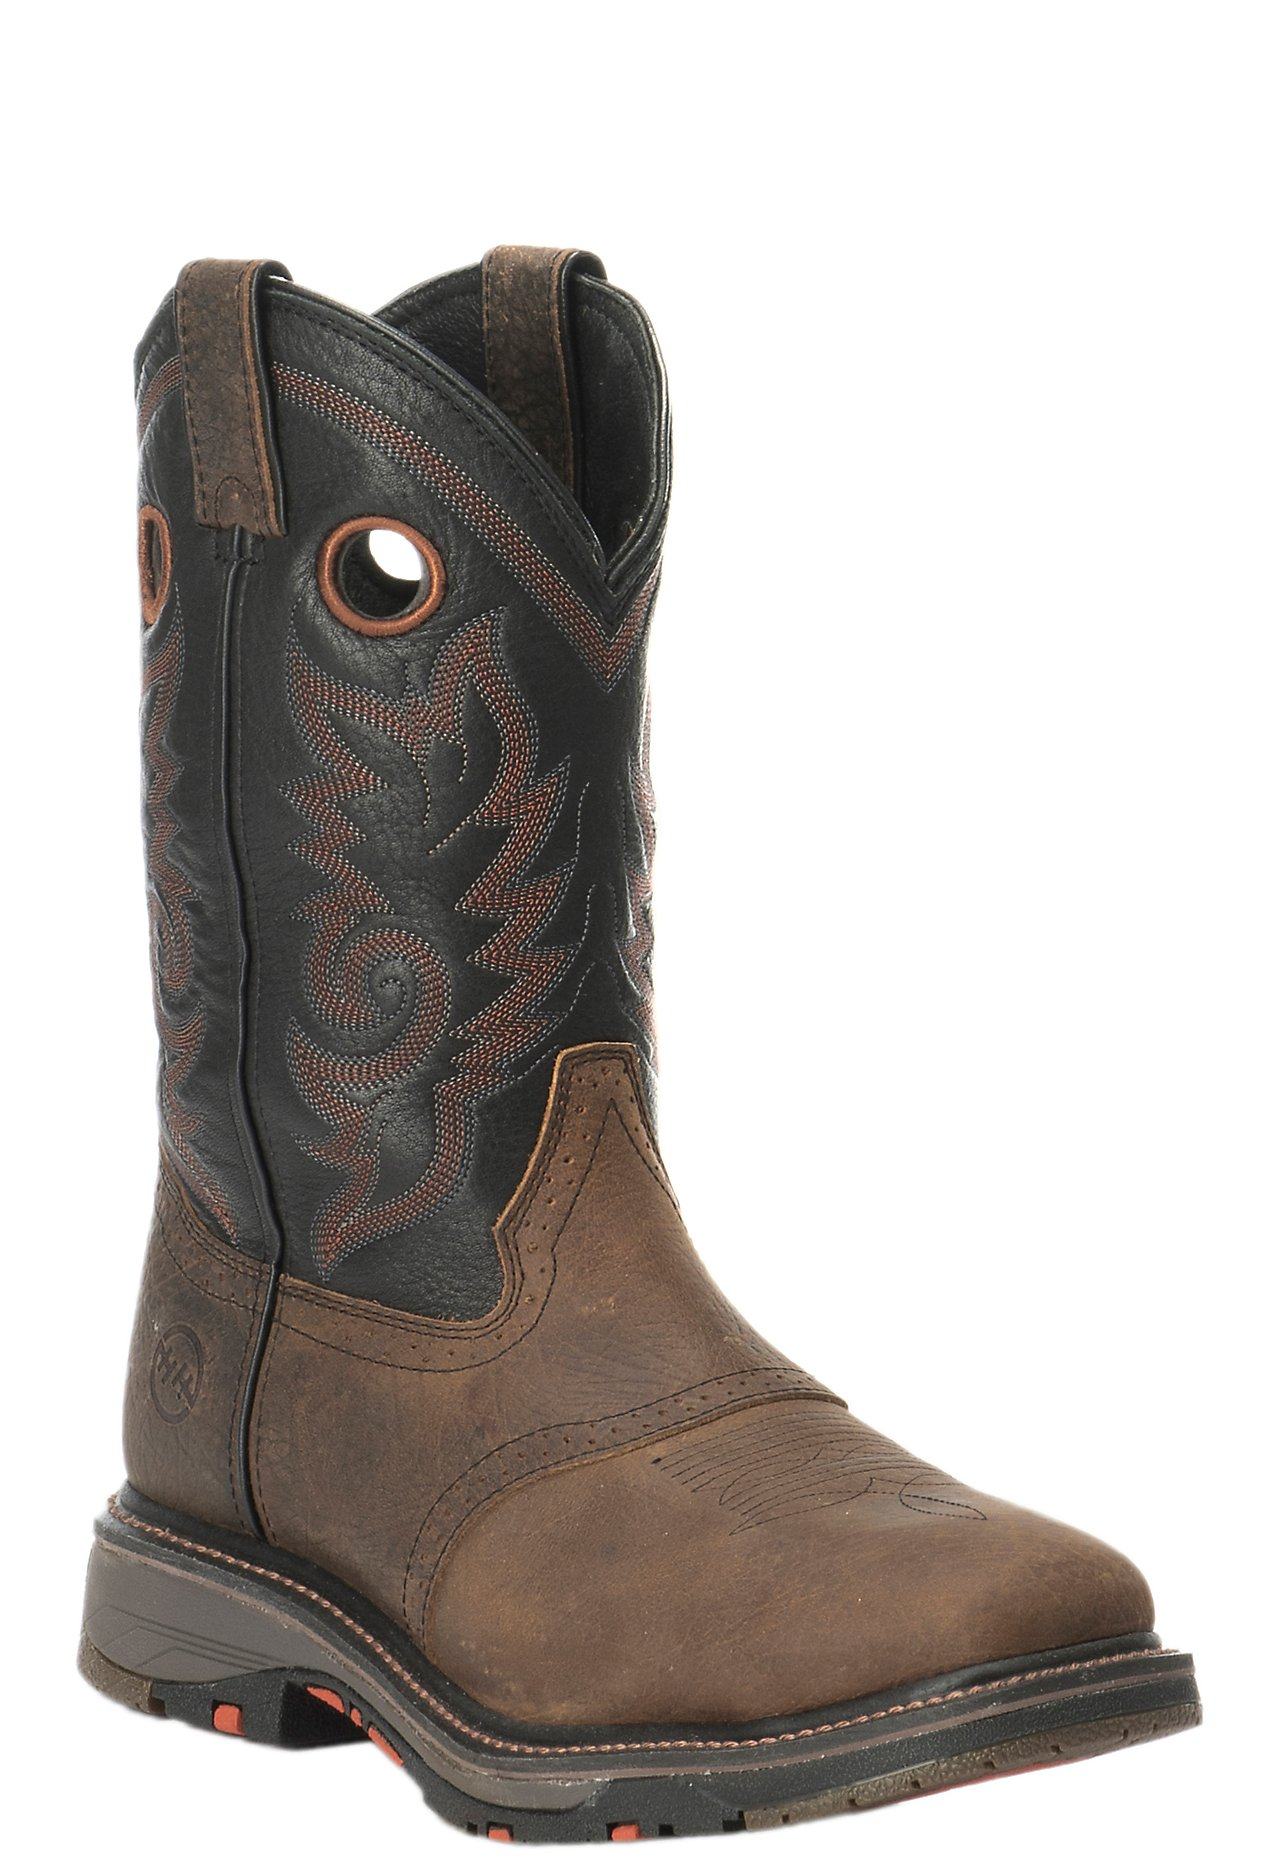 Shop Men&39s Work Boots | Free Shipping $50  | Cavender&39s